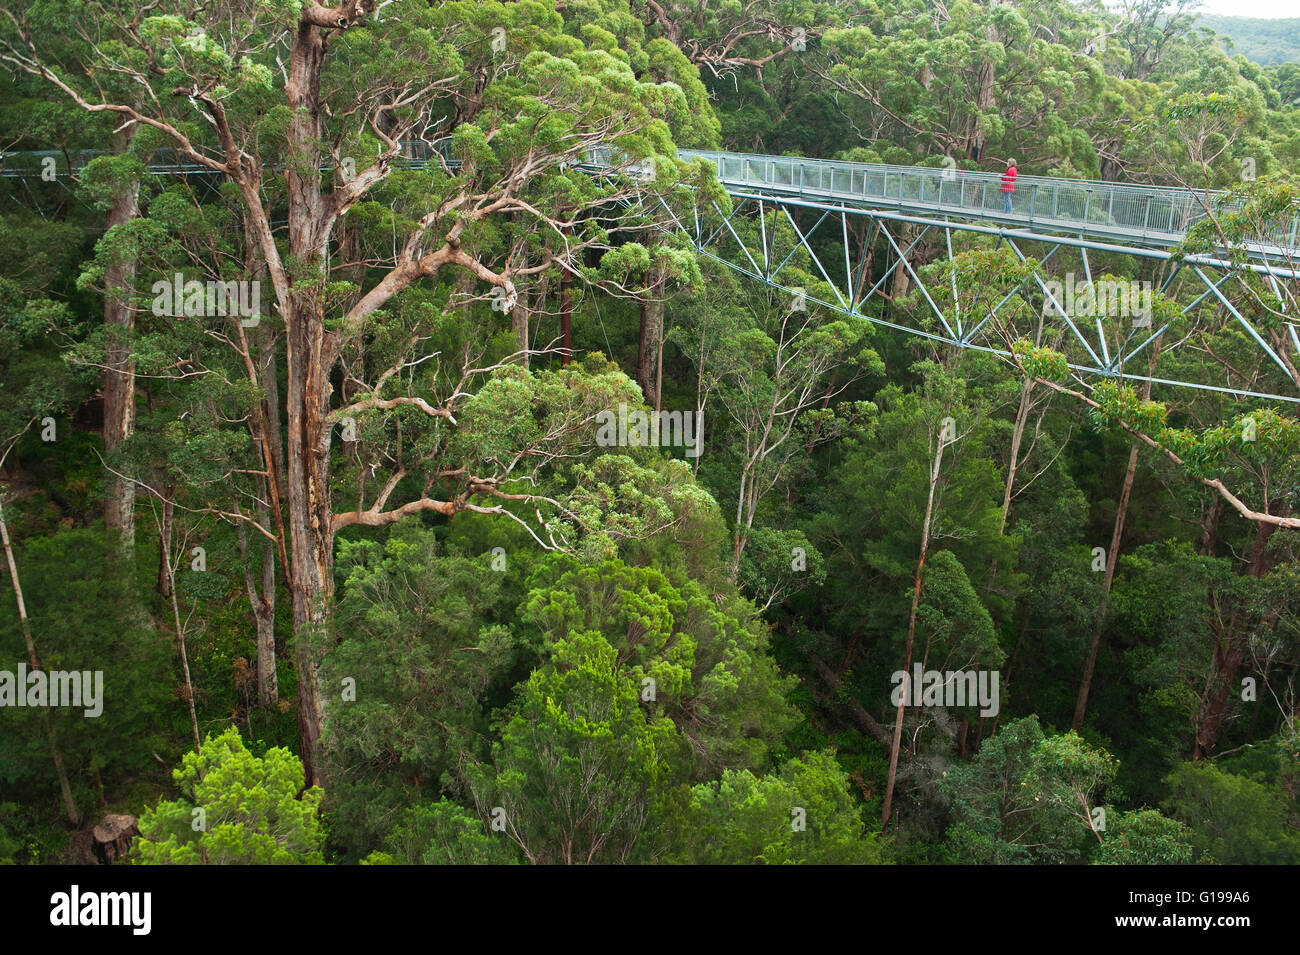 Treetop Walk, Canopy Walkway, Valley of the Giants, Walpole-Nornalup National Park, Australie occidentale Photo Stock